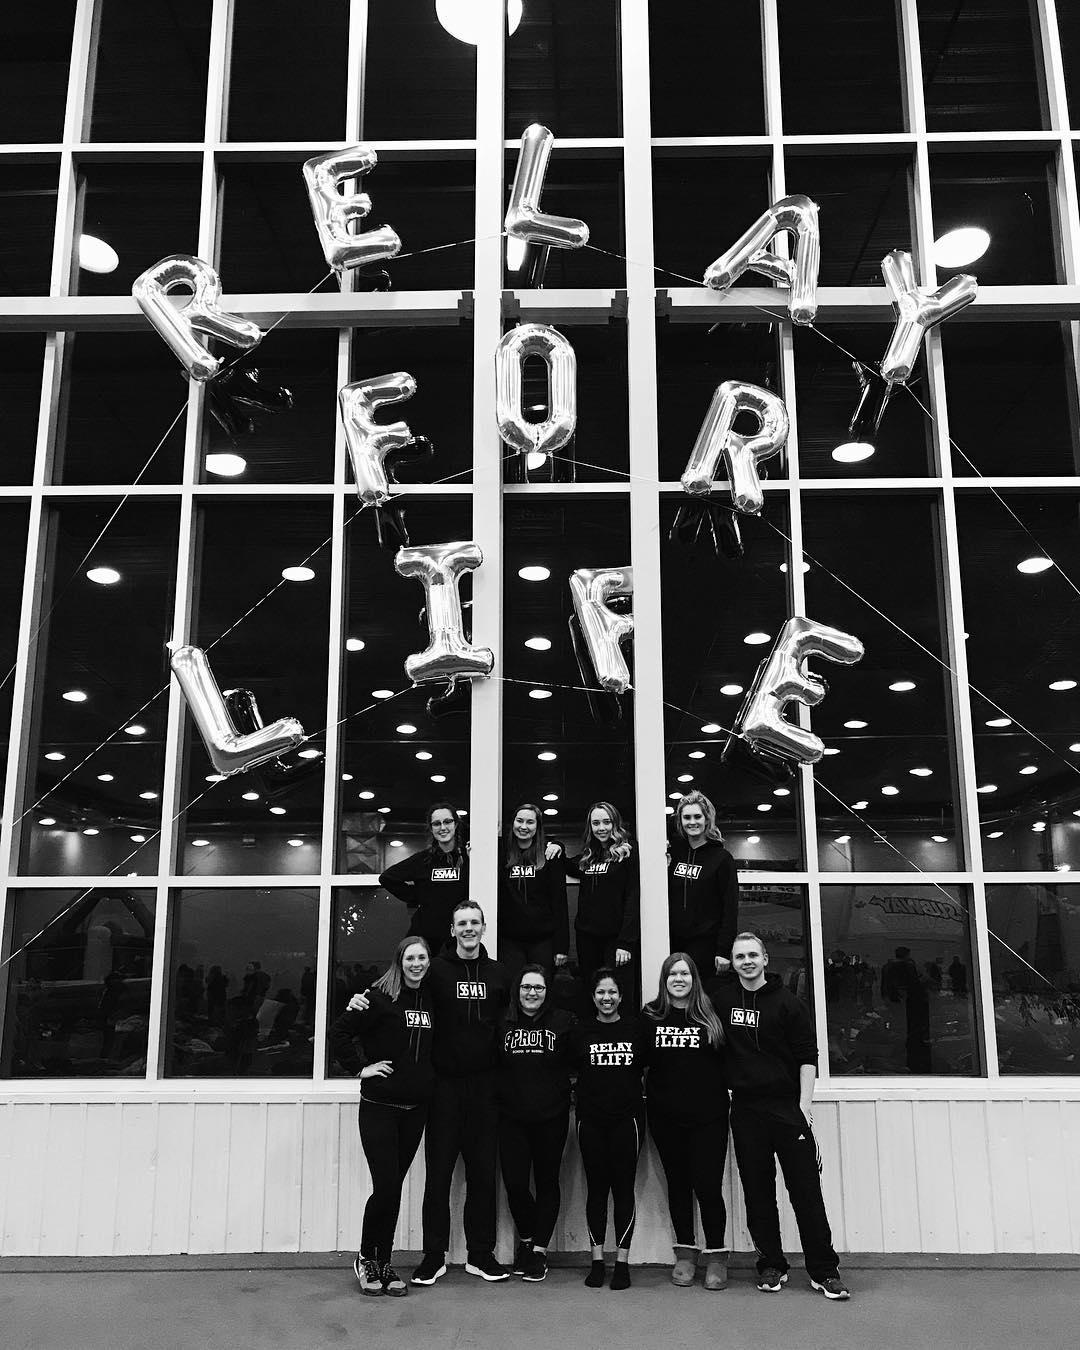 Sophia and her team members infront a large wall of window with balloons letters that spell out Relay for Life.